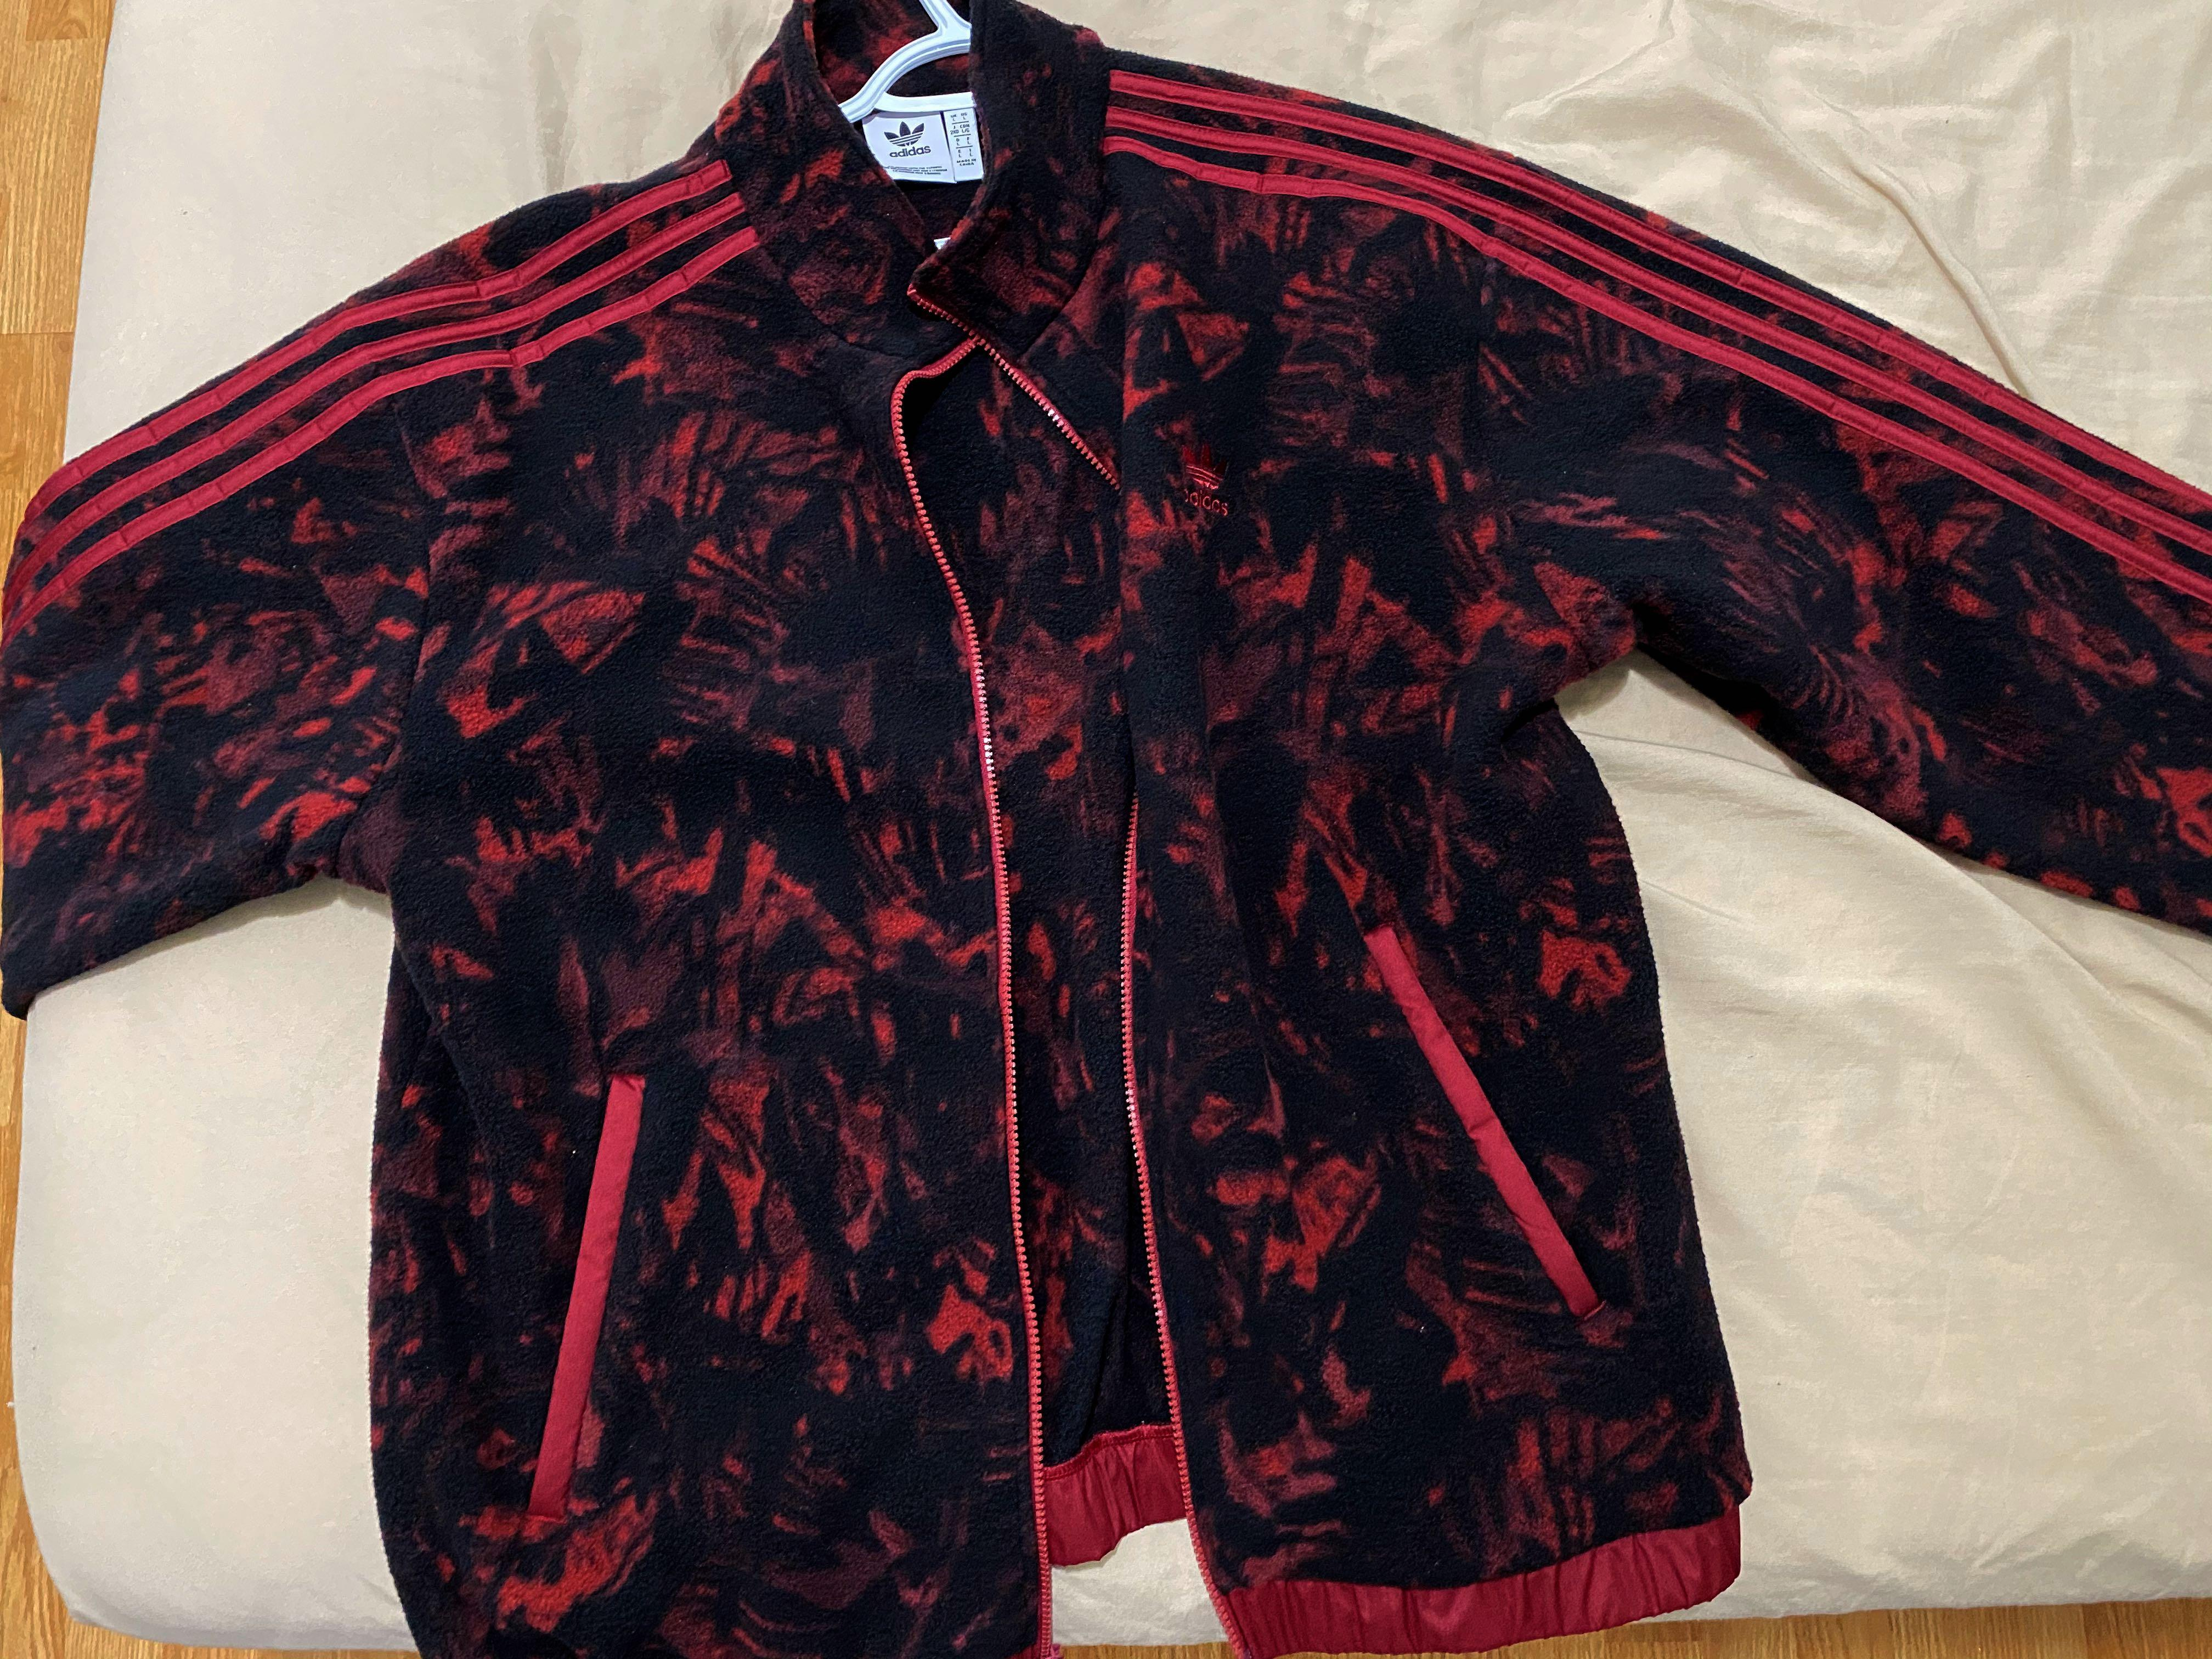 Adidas All over printed Jacket (L)